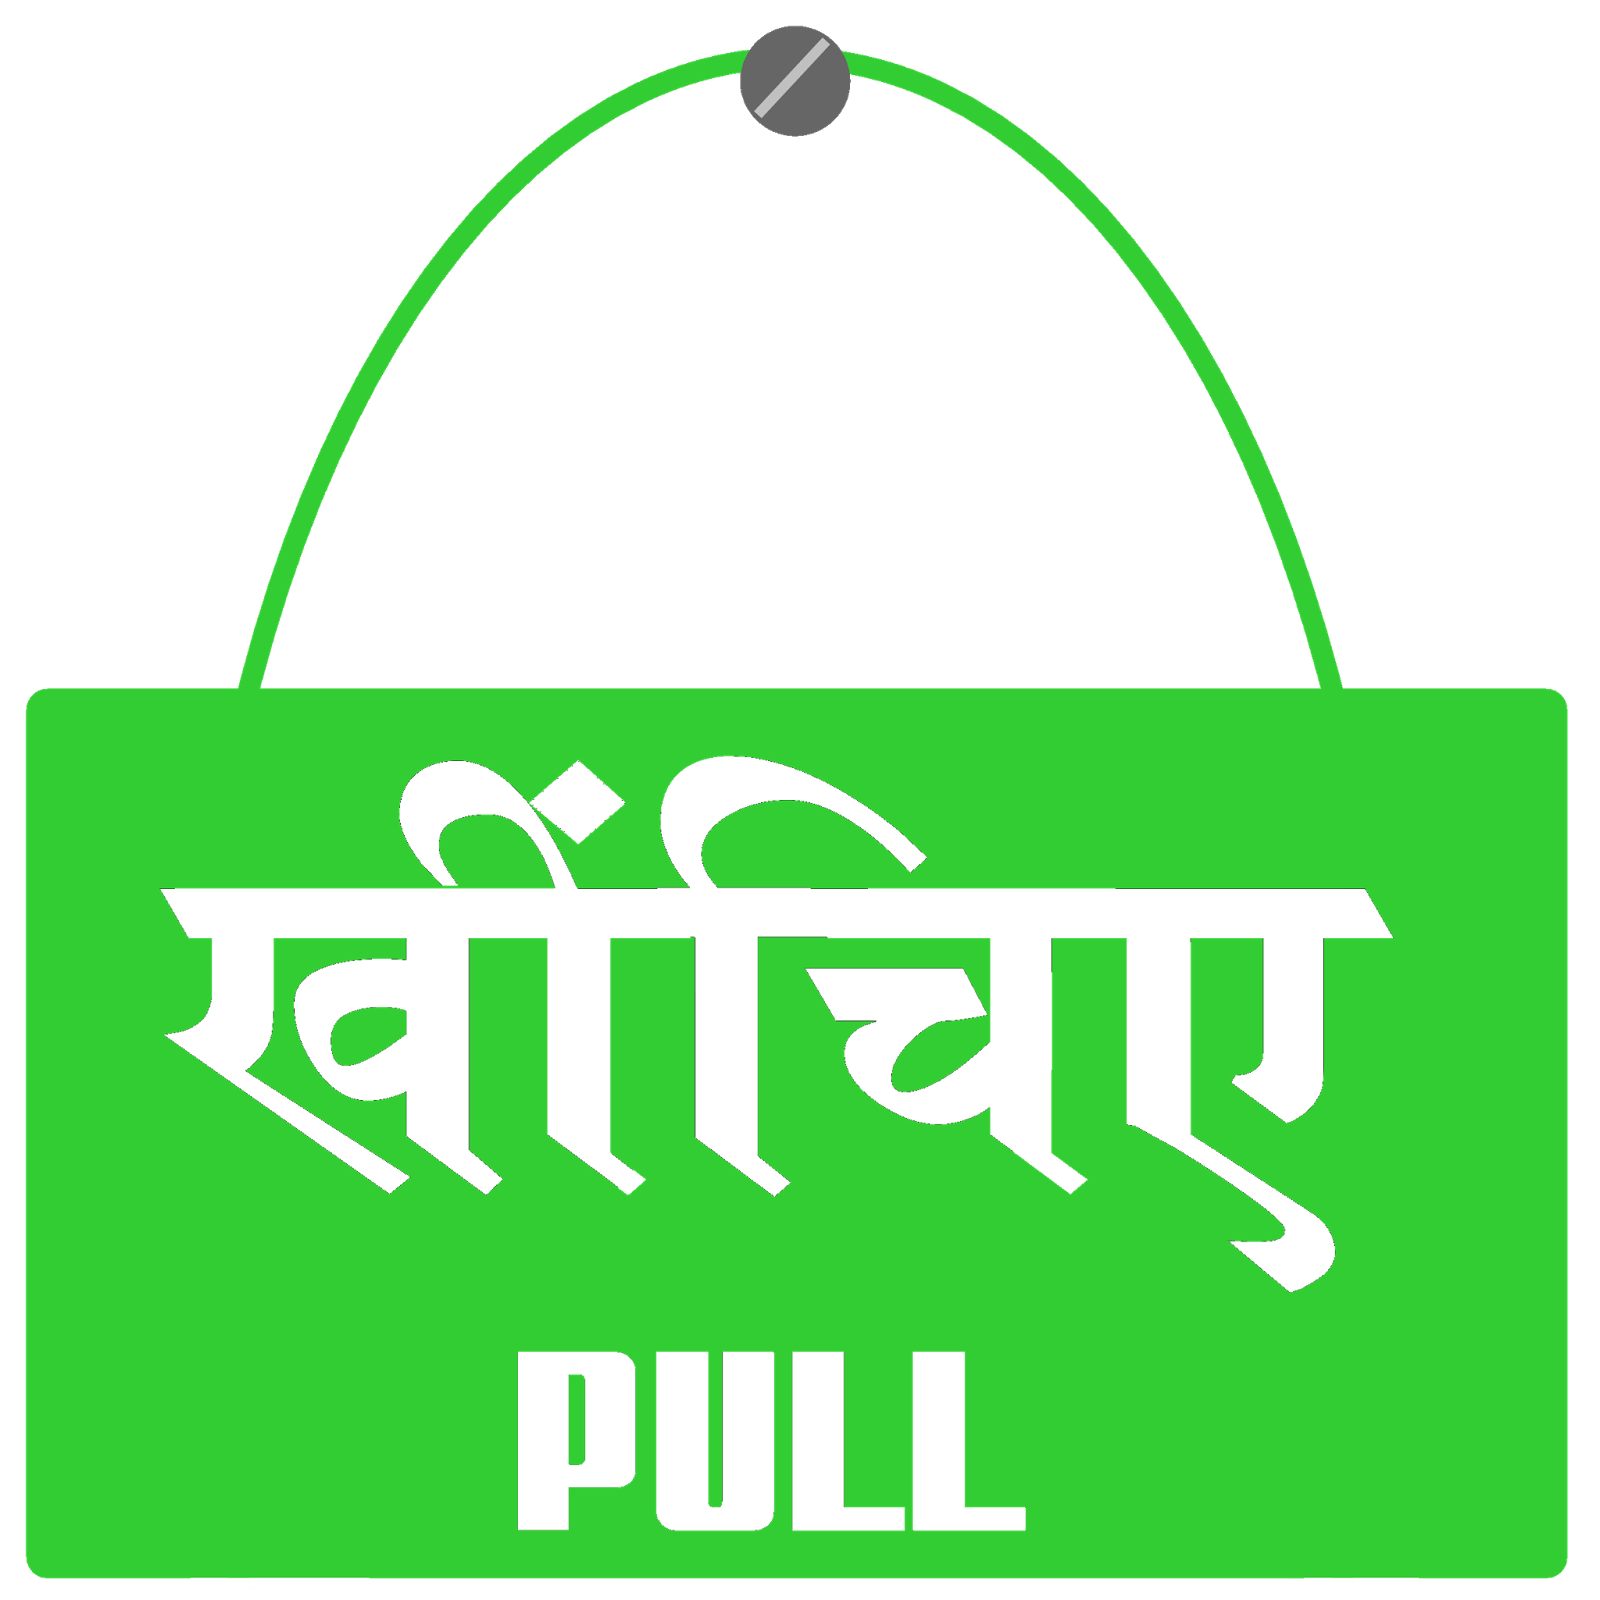 Push Pull Stickers In Hindi